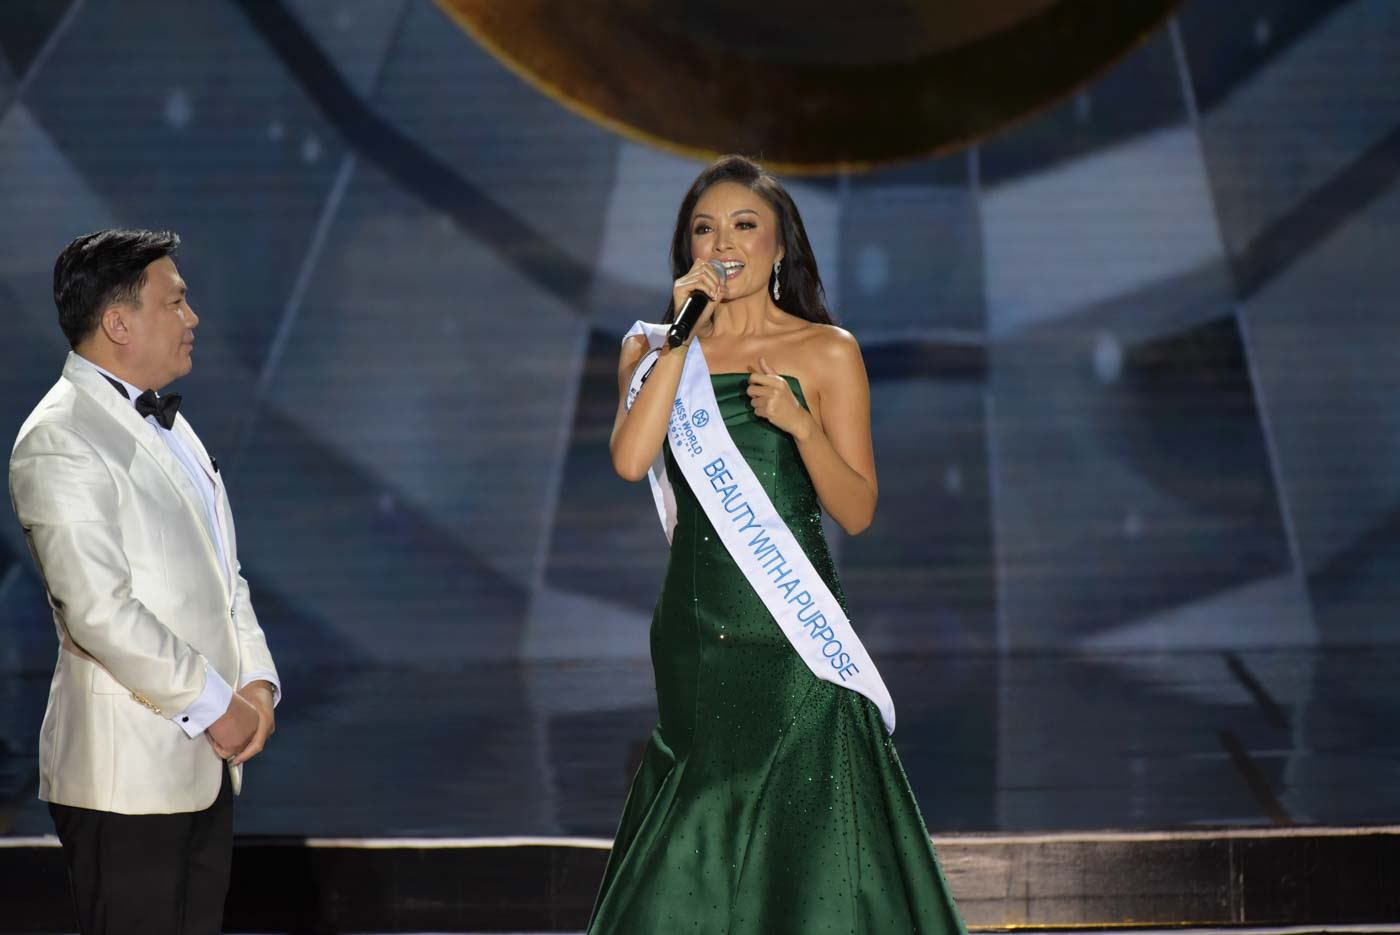 EMOTIONAL. Glyssa gives a speech after winning the Beauty with a Purpose award. Photo by Alecs Ongcal/Rappler